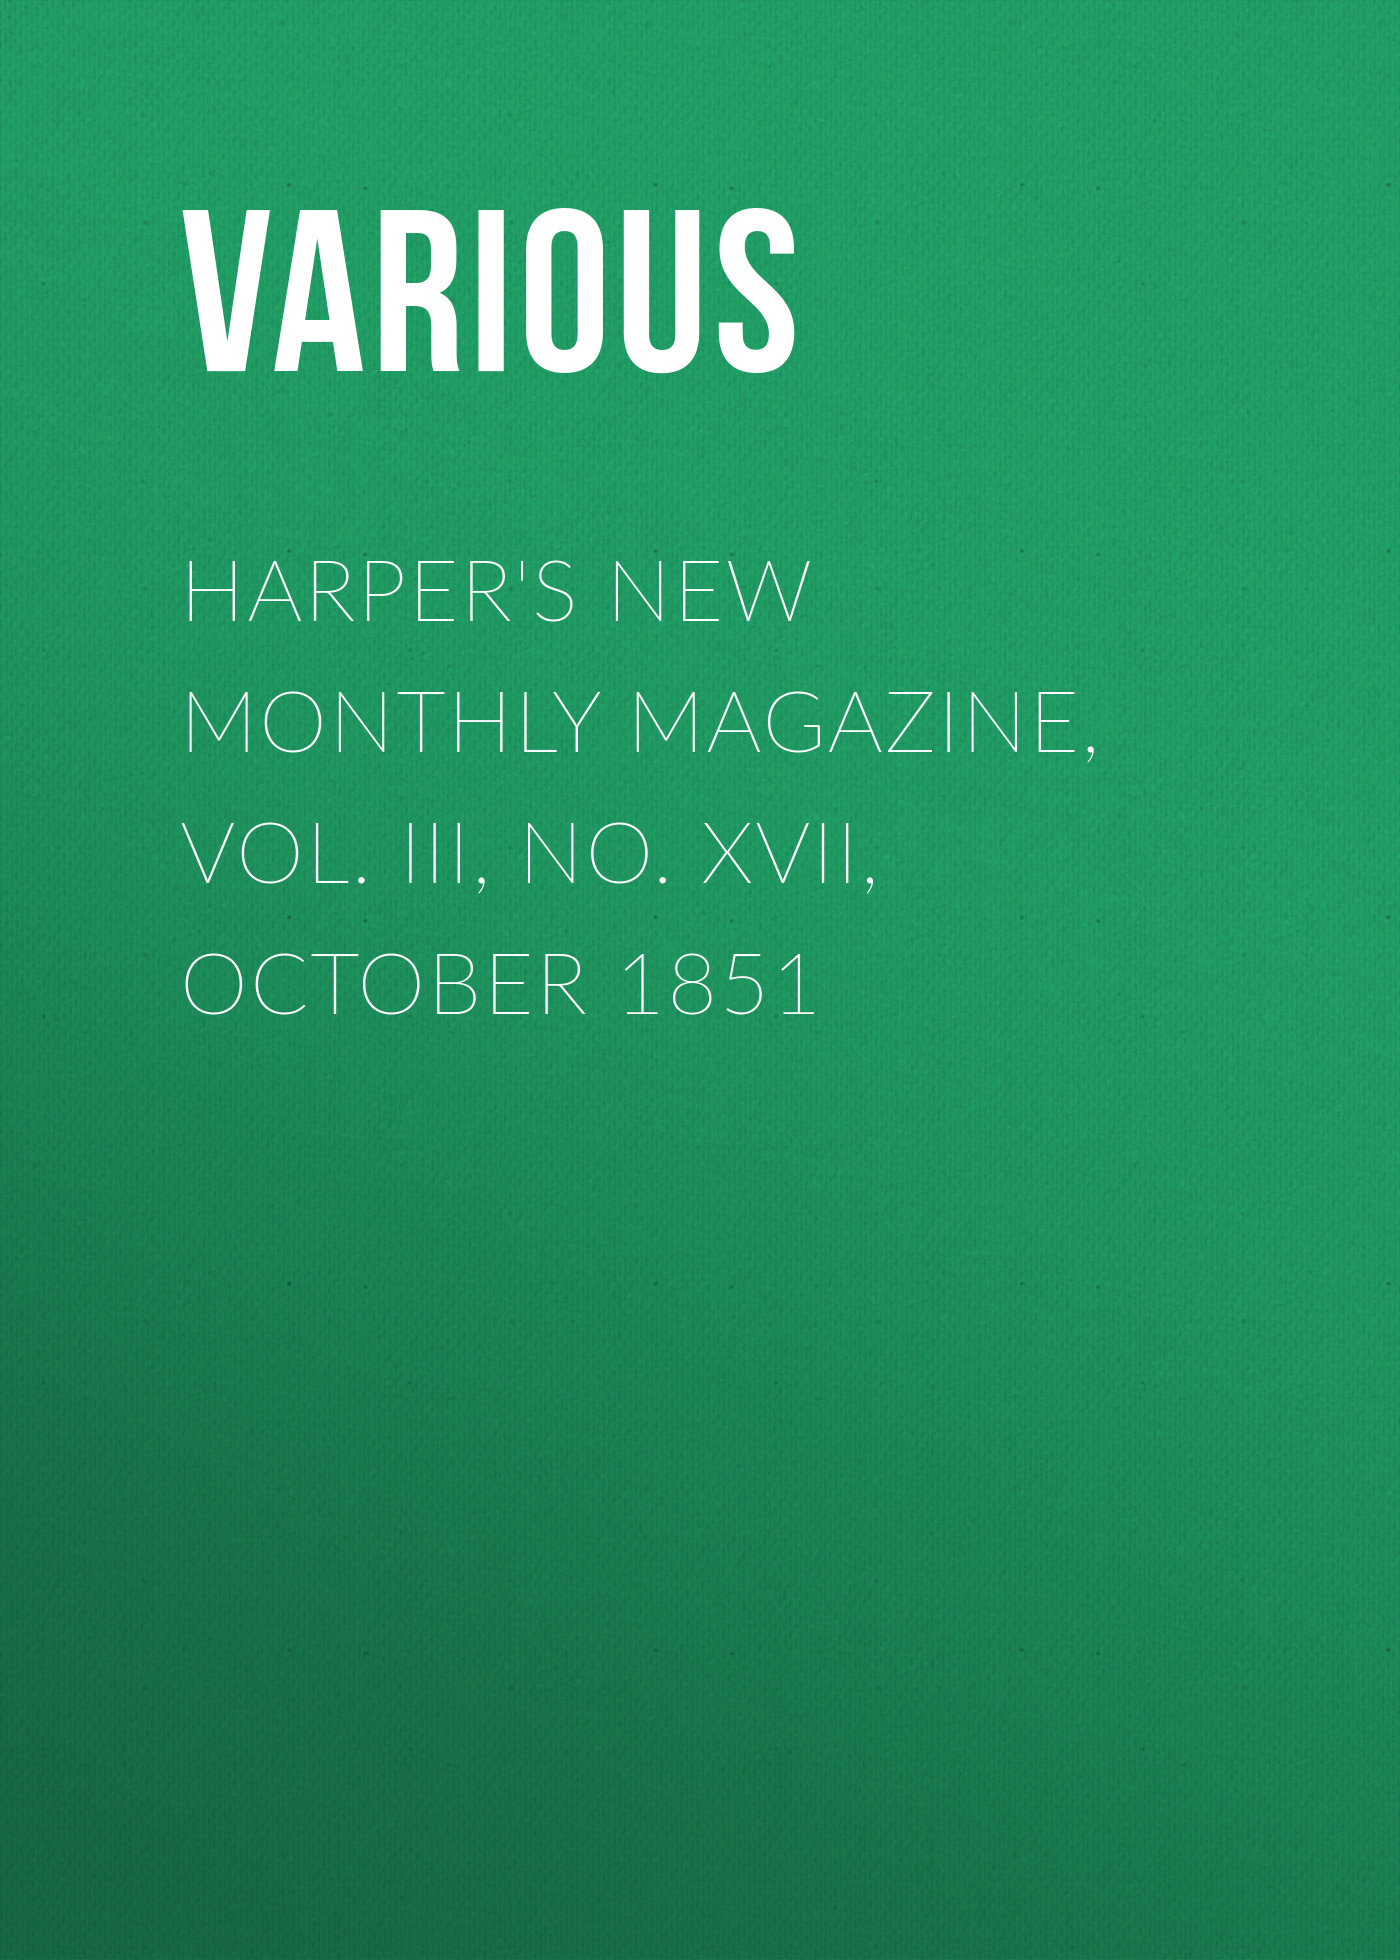 Harper\'s New Monthly Magazine, Vol. III, No. XVII, October 1851 ( Various  )